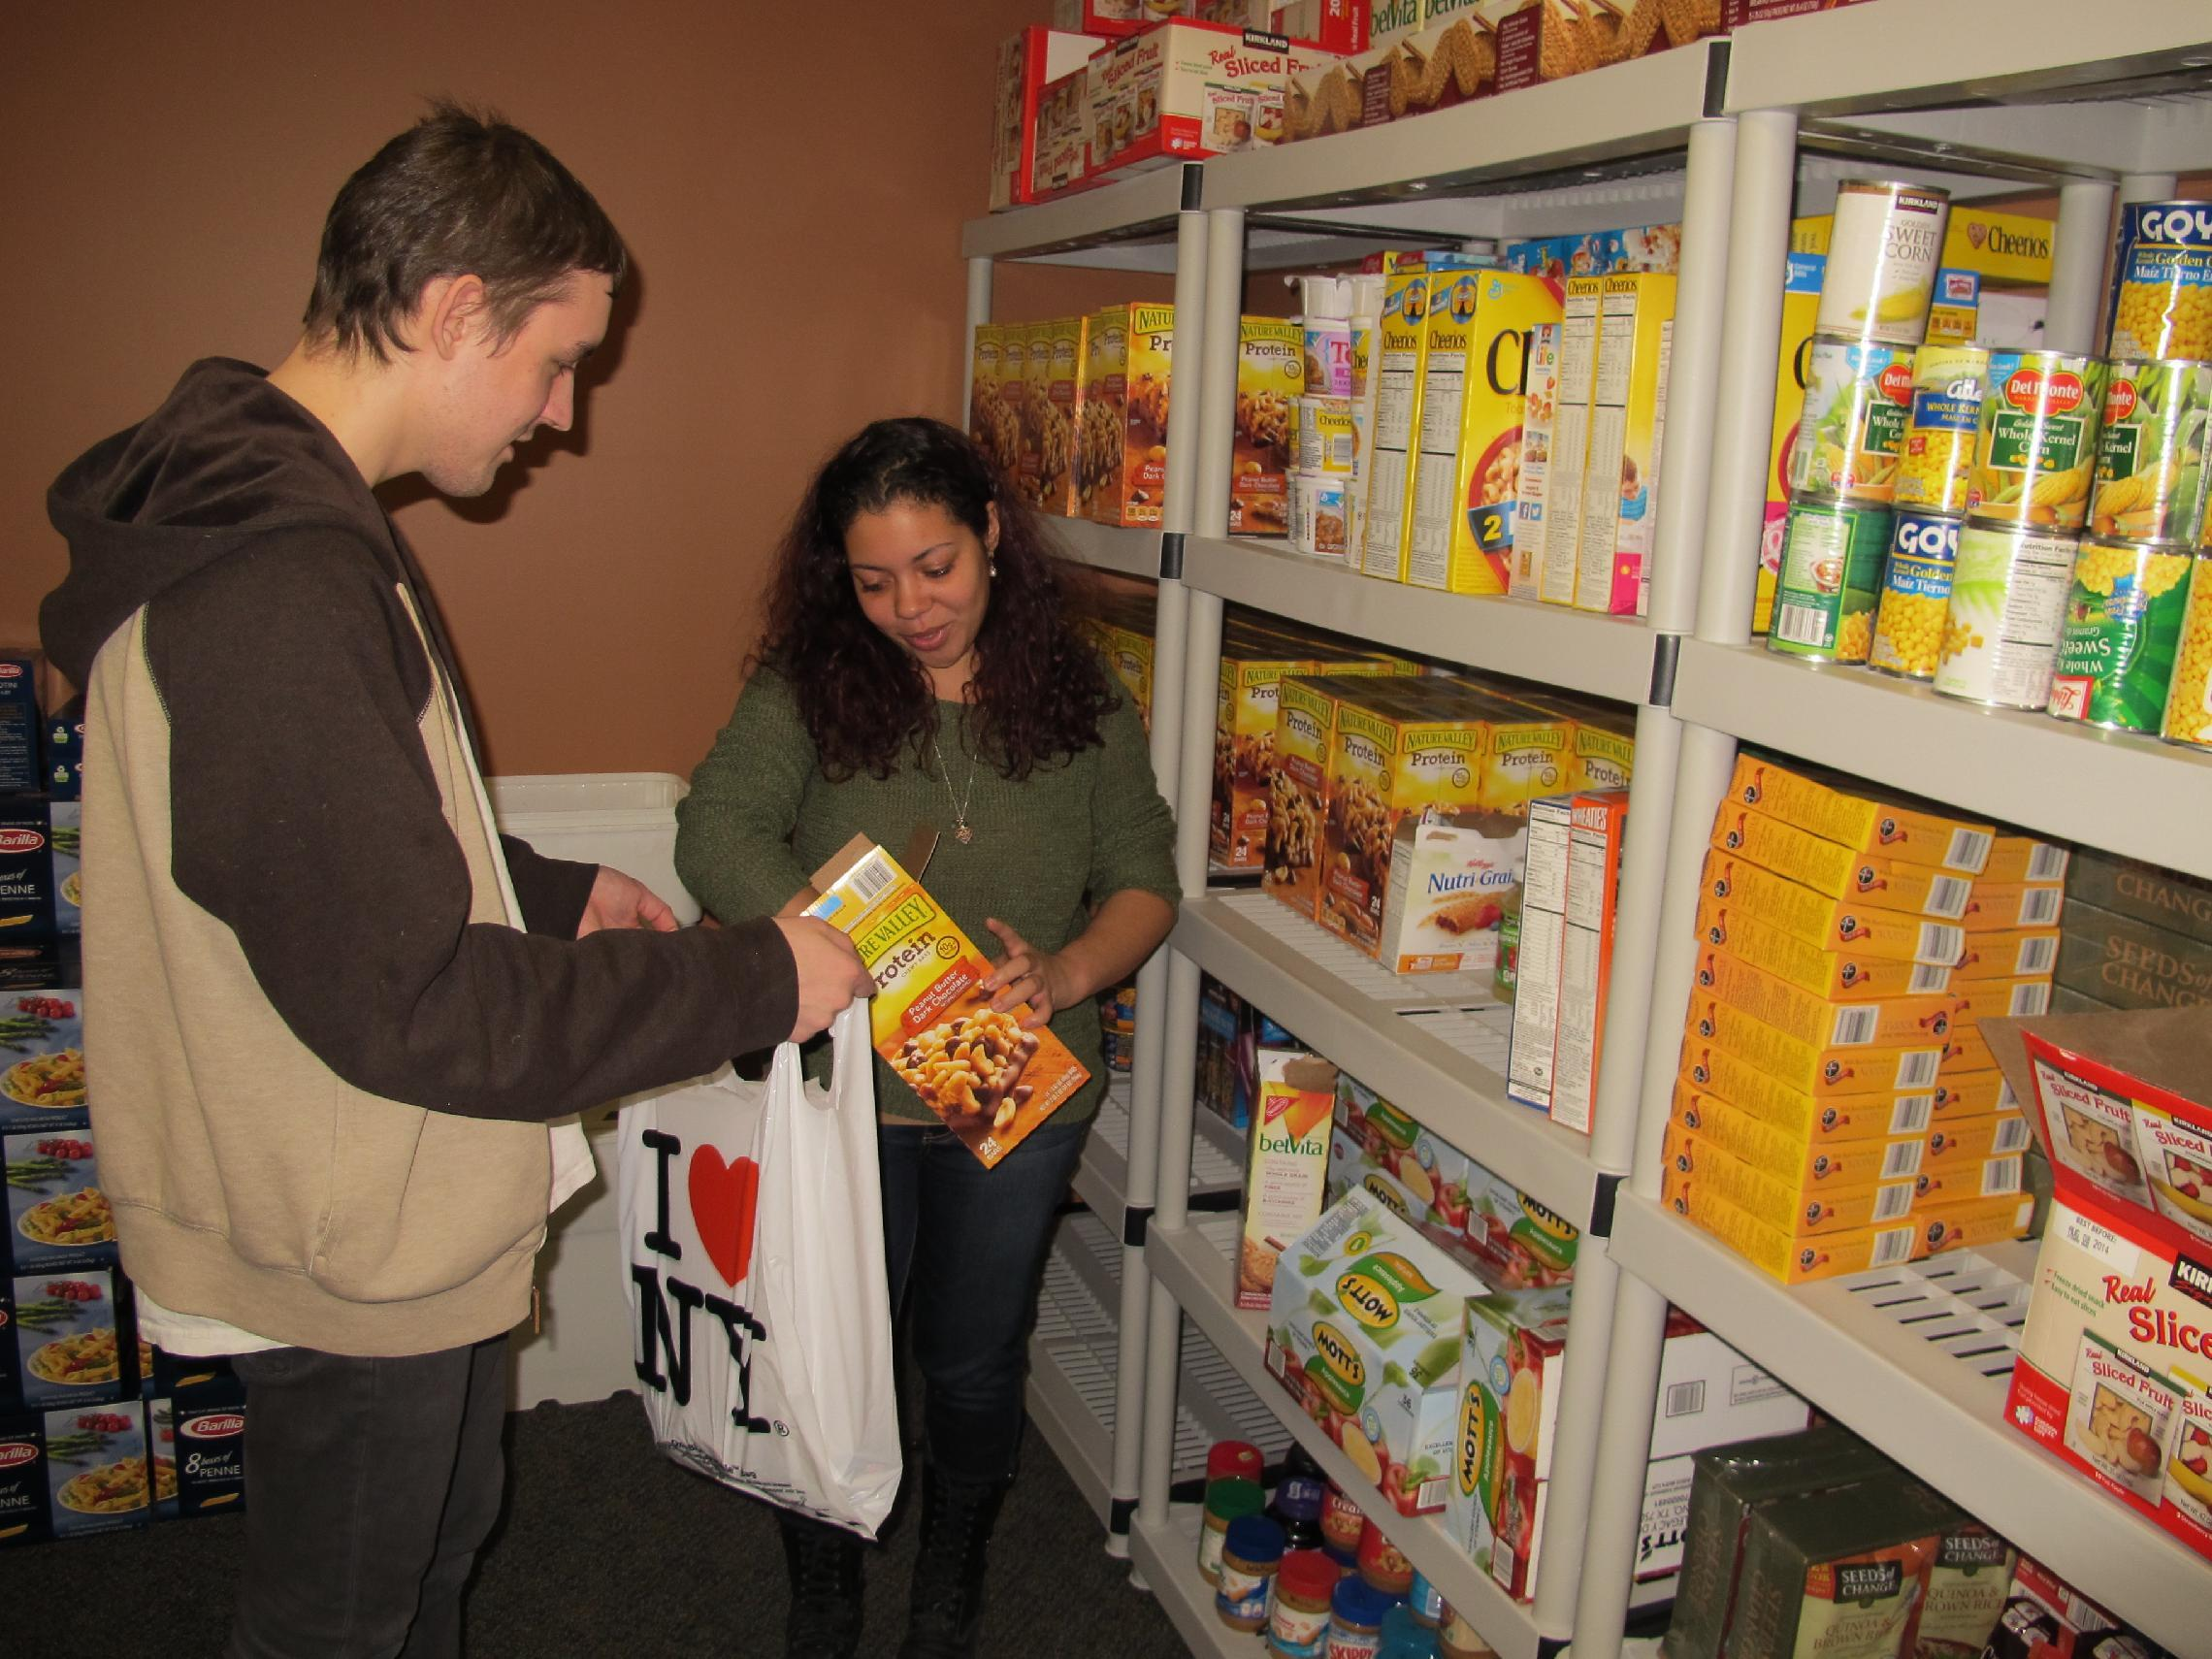 Food pantries on the rise at US college campuses